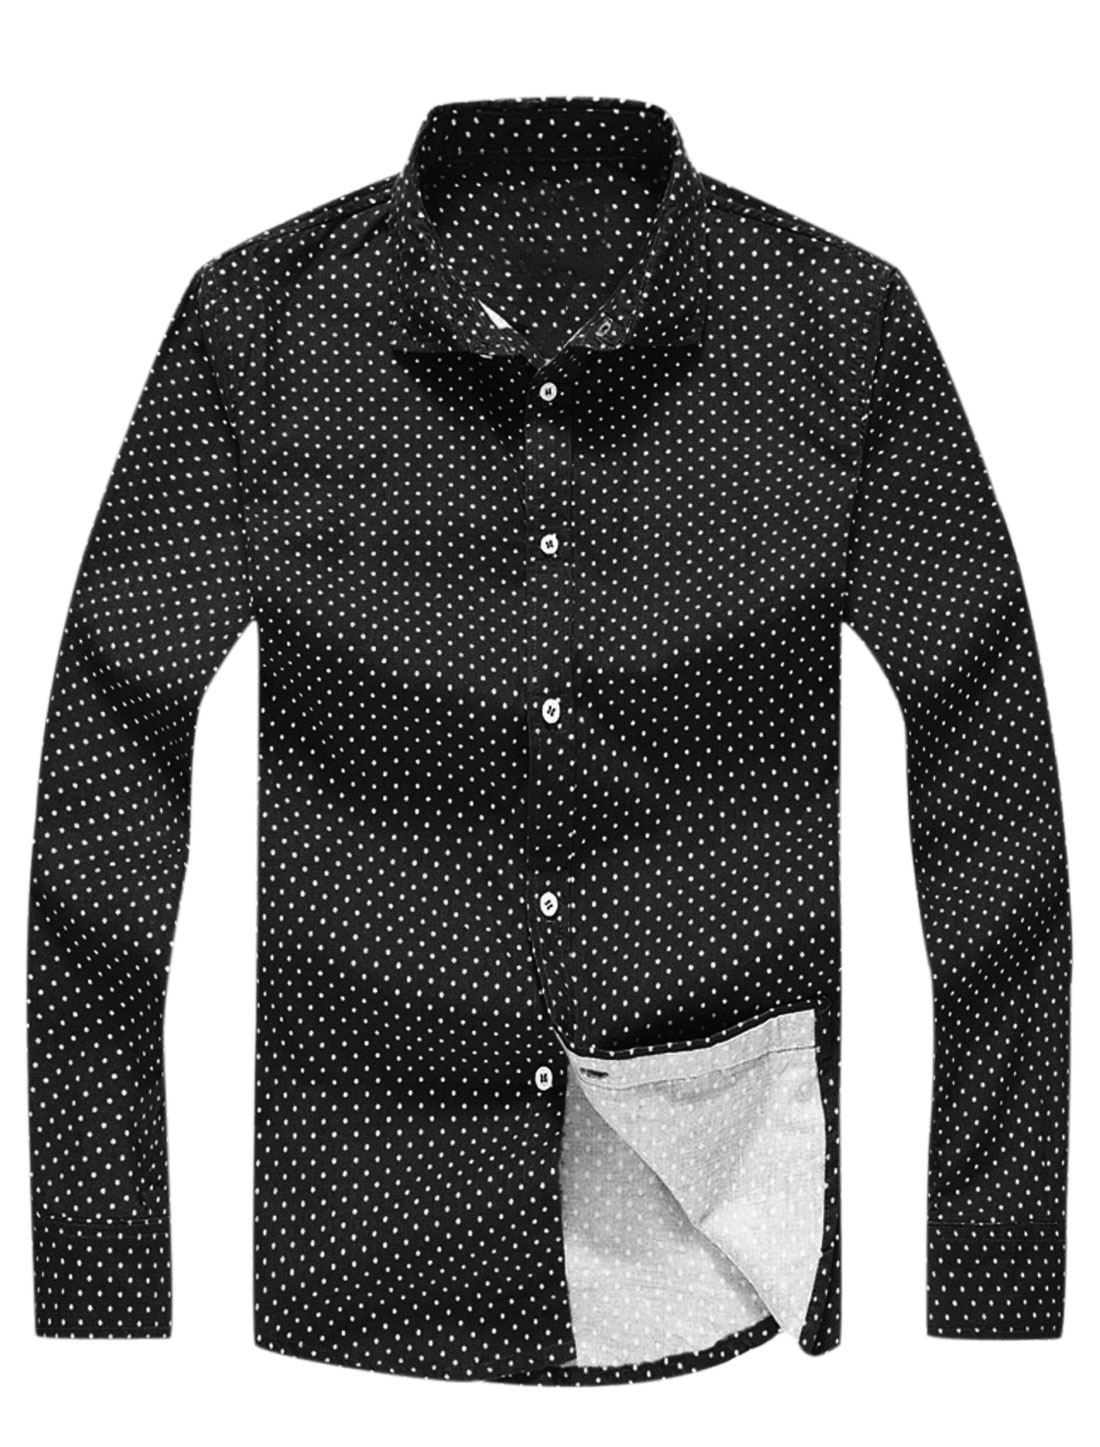 Point Collar Dots Prints Casual Shirts for Men Black S